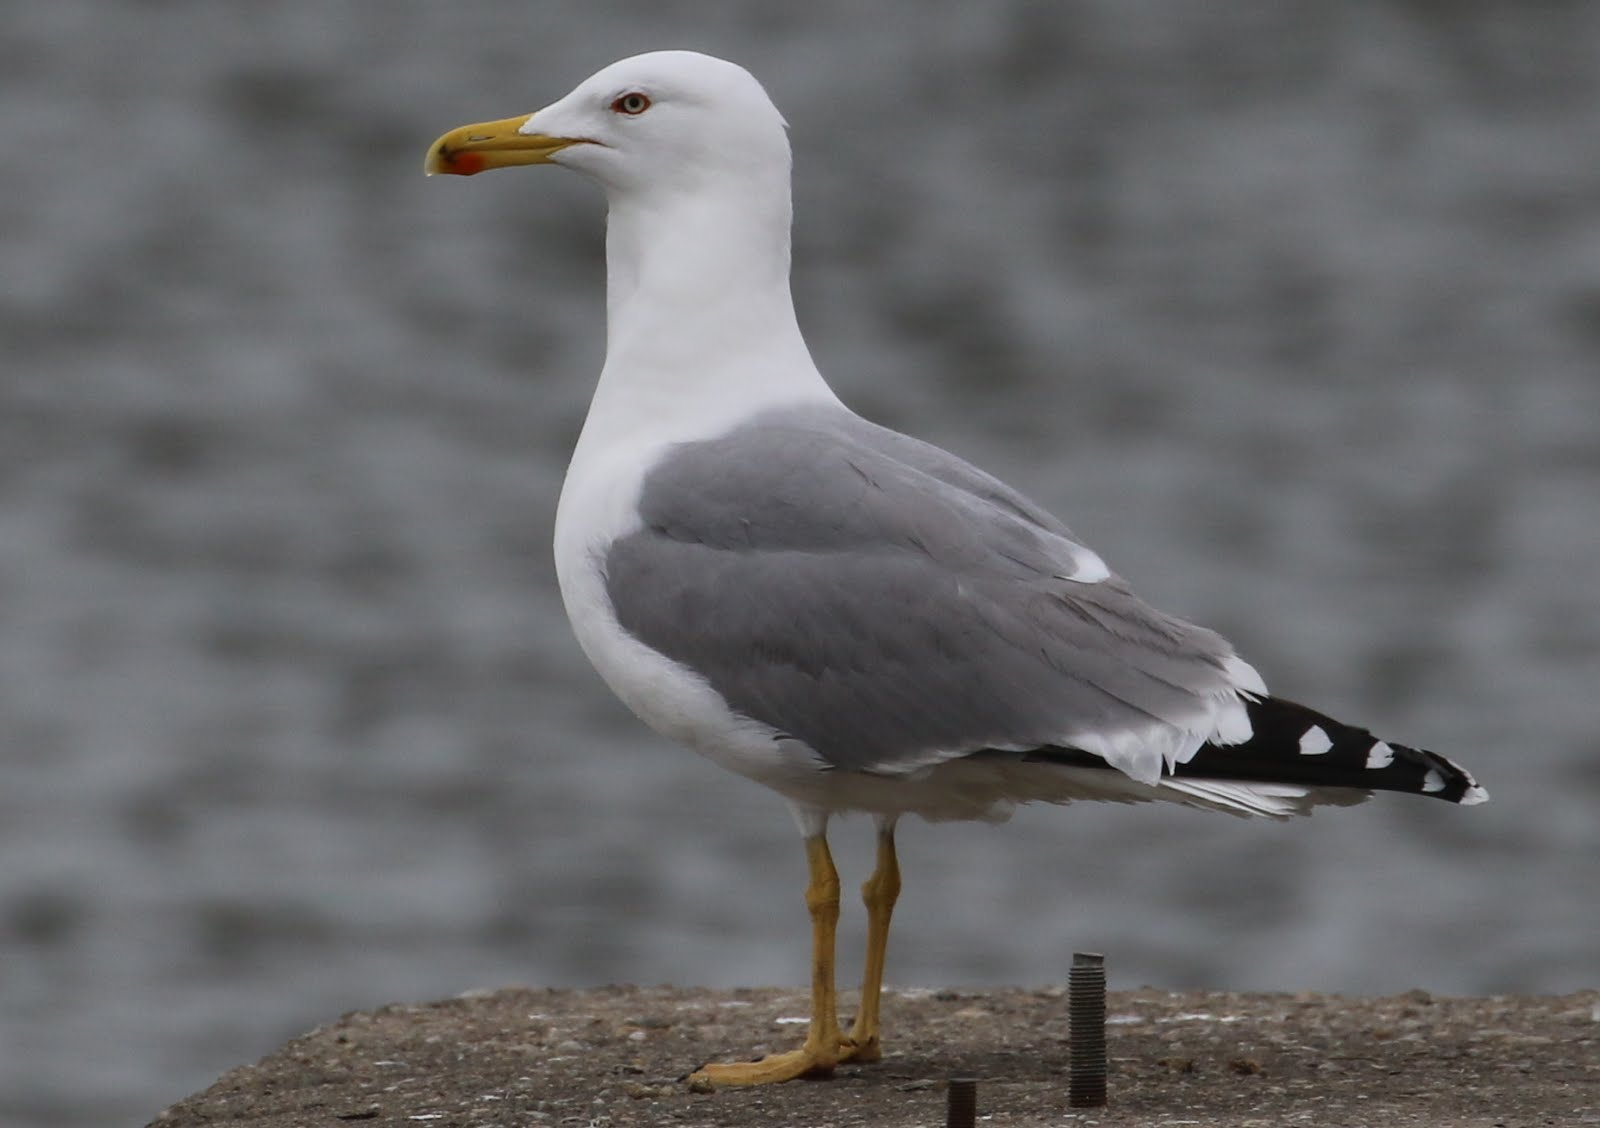 (L.m.michahellis) ; Yellow-legged gulls froom Black Sea /Gaviota patiamarilla de Mar negro/